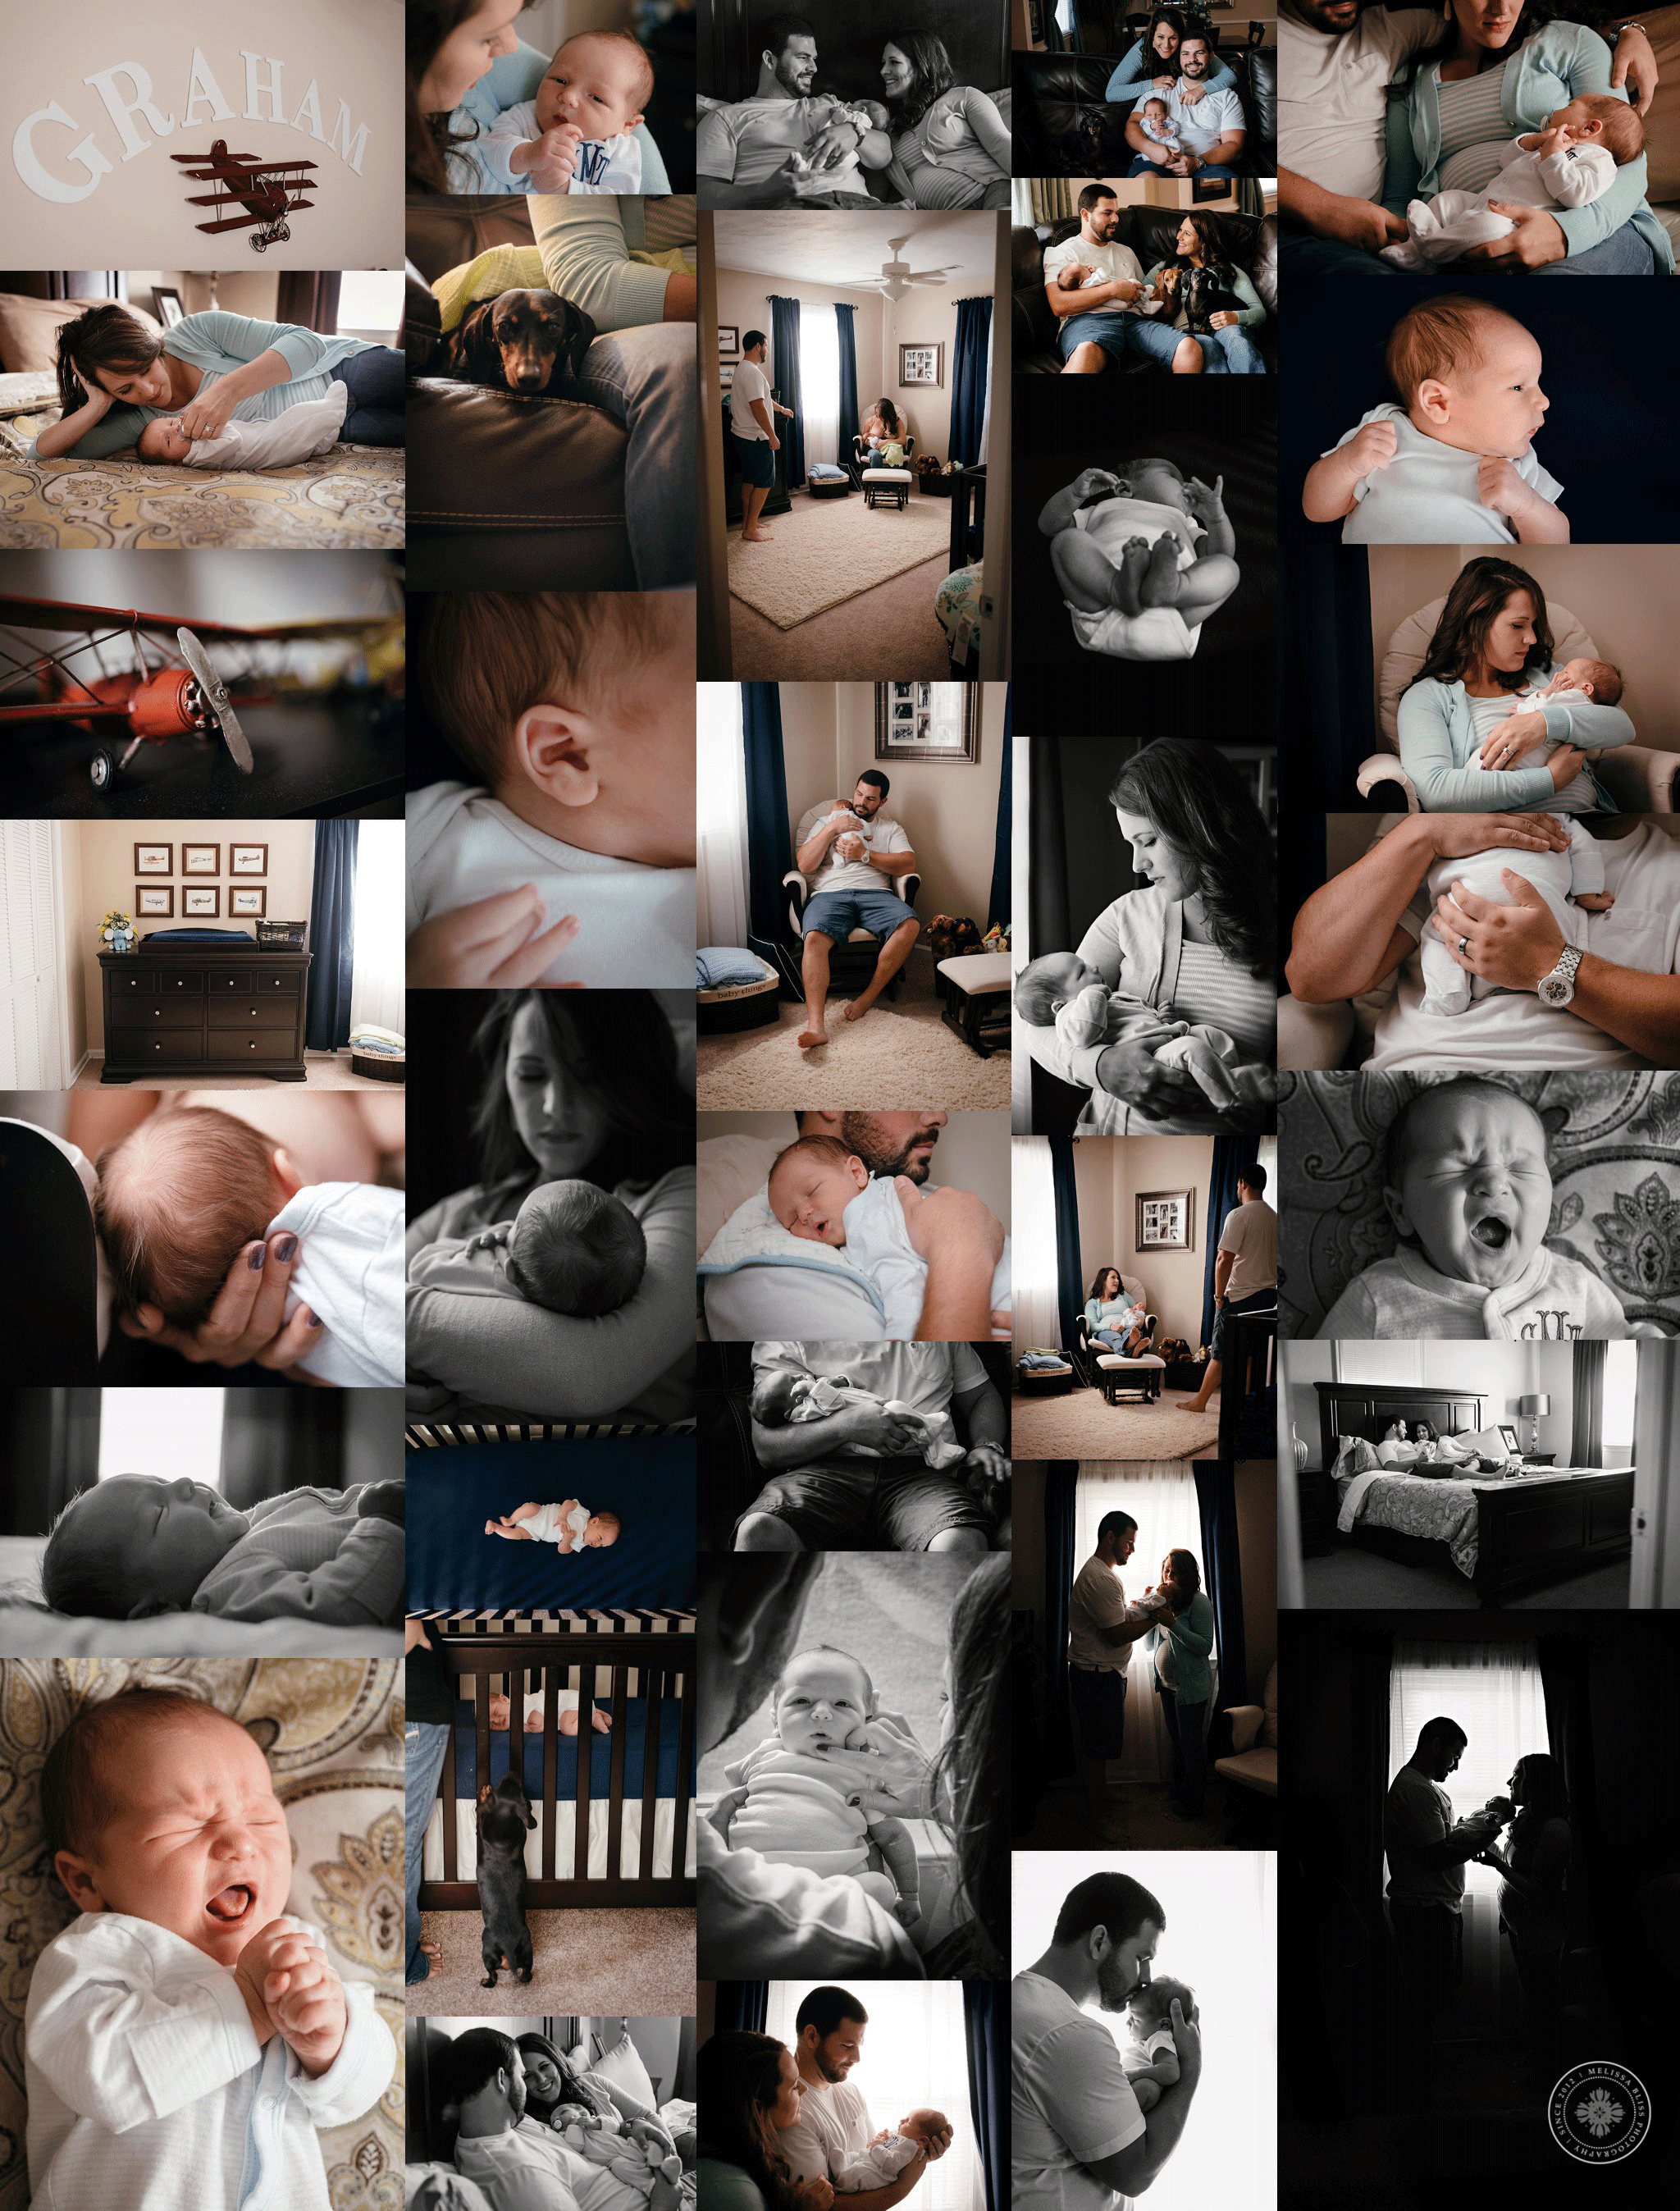 newborn-lifestyle-photography-newborn-session-in-home-newborn-photography-virginia-beach-norfolk-photographer-melissa-bliss-photography-documentary-newborn-photos